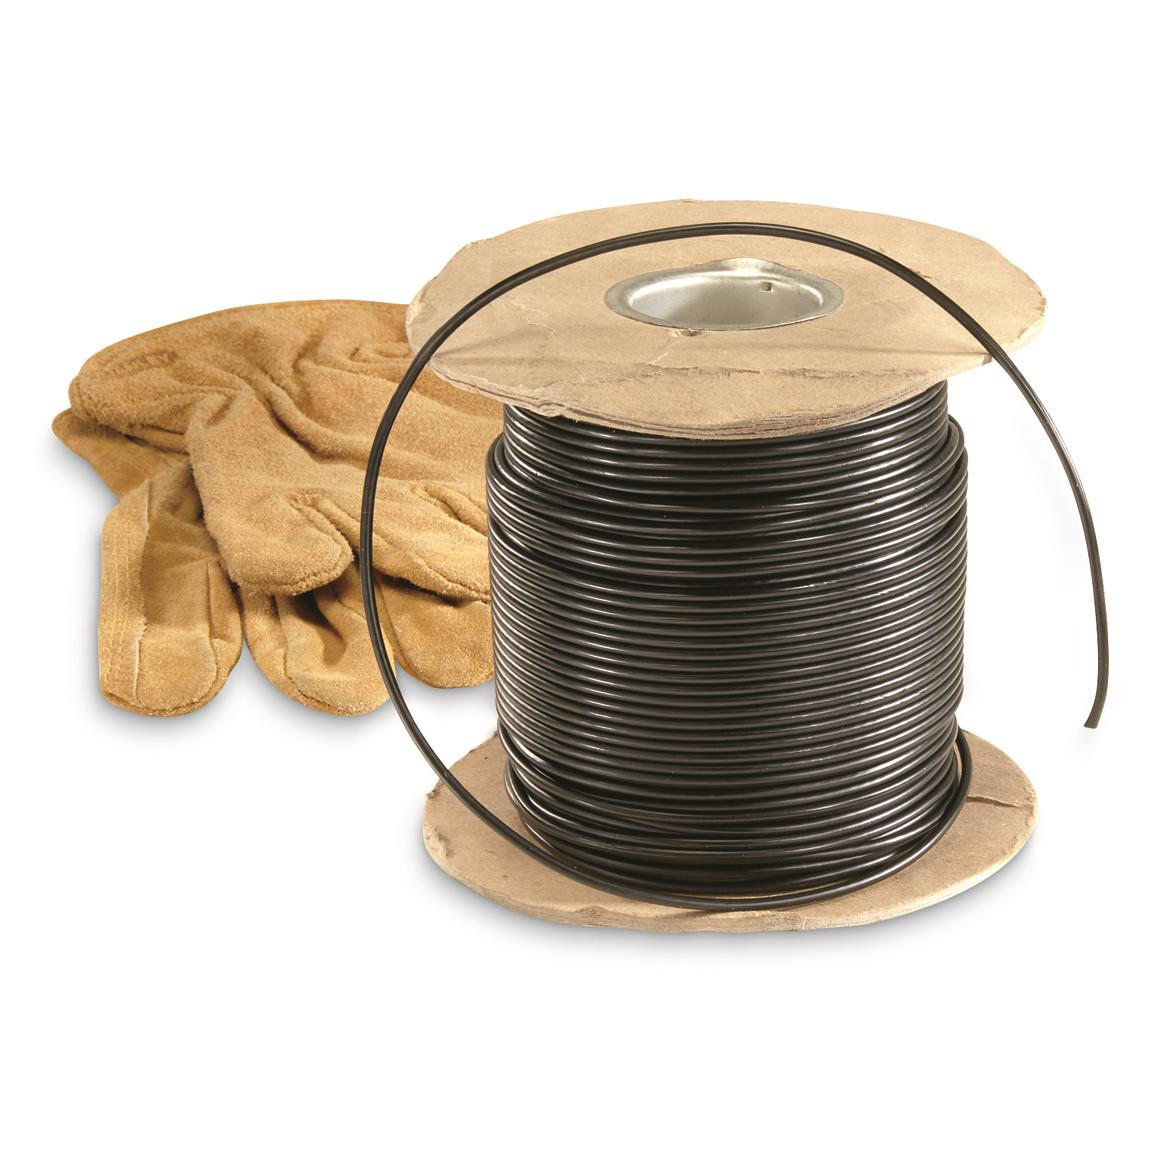 U.S. Military Surplus 500' Copper Core Electrical Wire, New